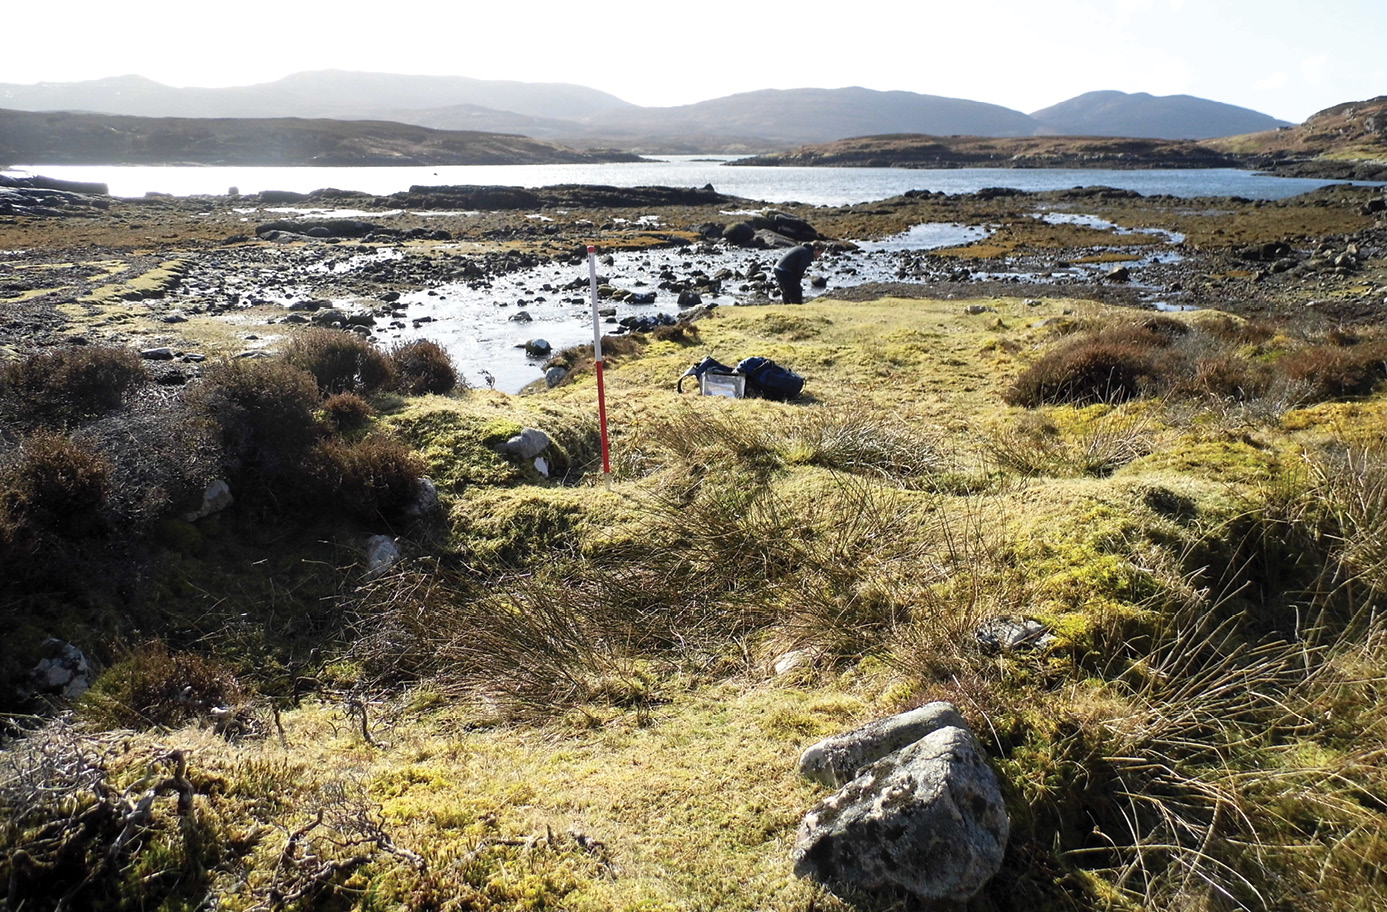 ABOVE The home of a seasonal kelp worker at Allt Alisary. Lying remarkably close to the sea, it comprises a rectangular structure, with either a small 'porch', or perhaps a lean-to or storage area on its western edge. A tiny patch of feannagan (cultivation ridge) lies on the shore.